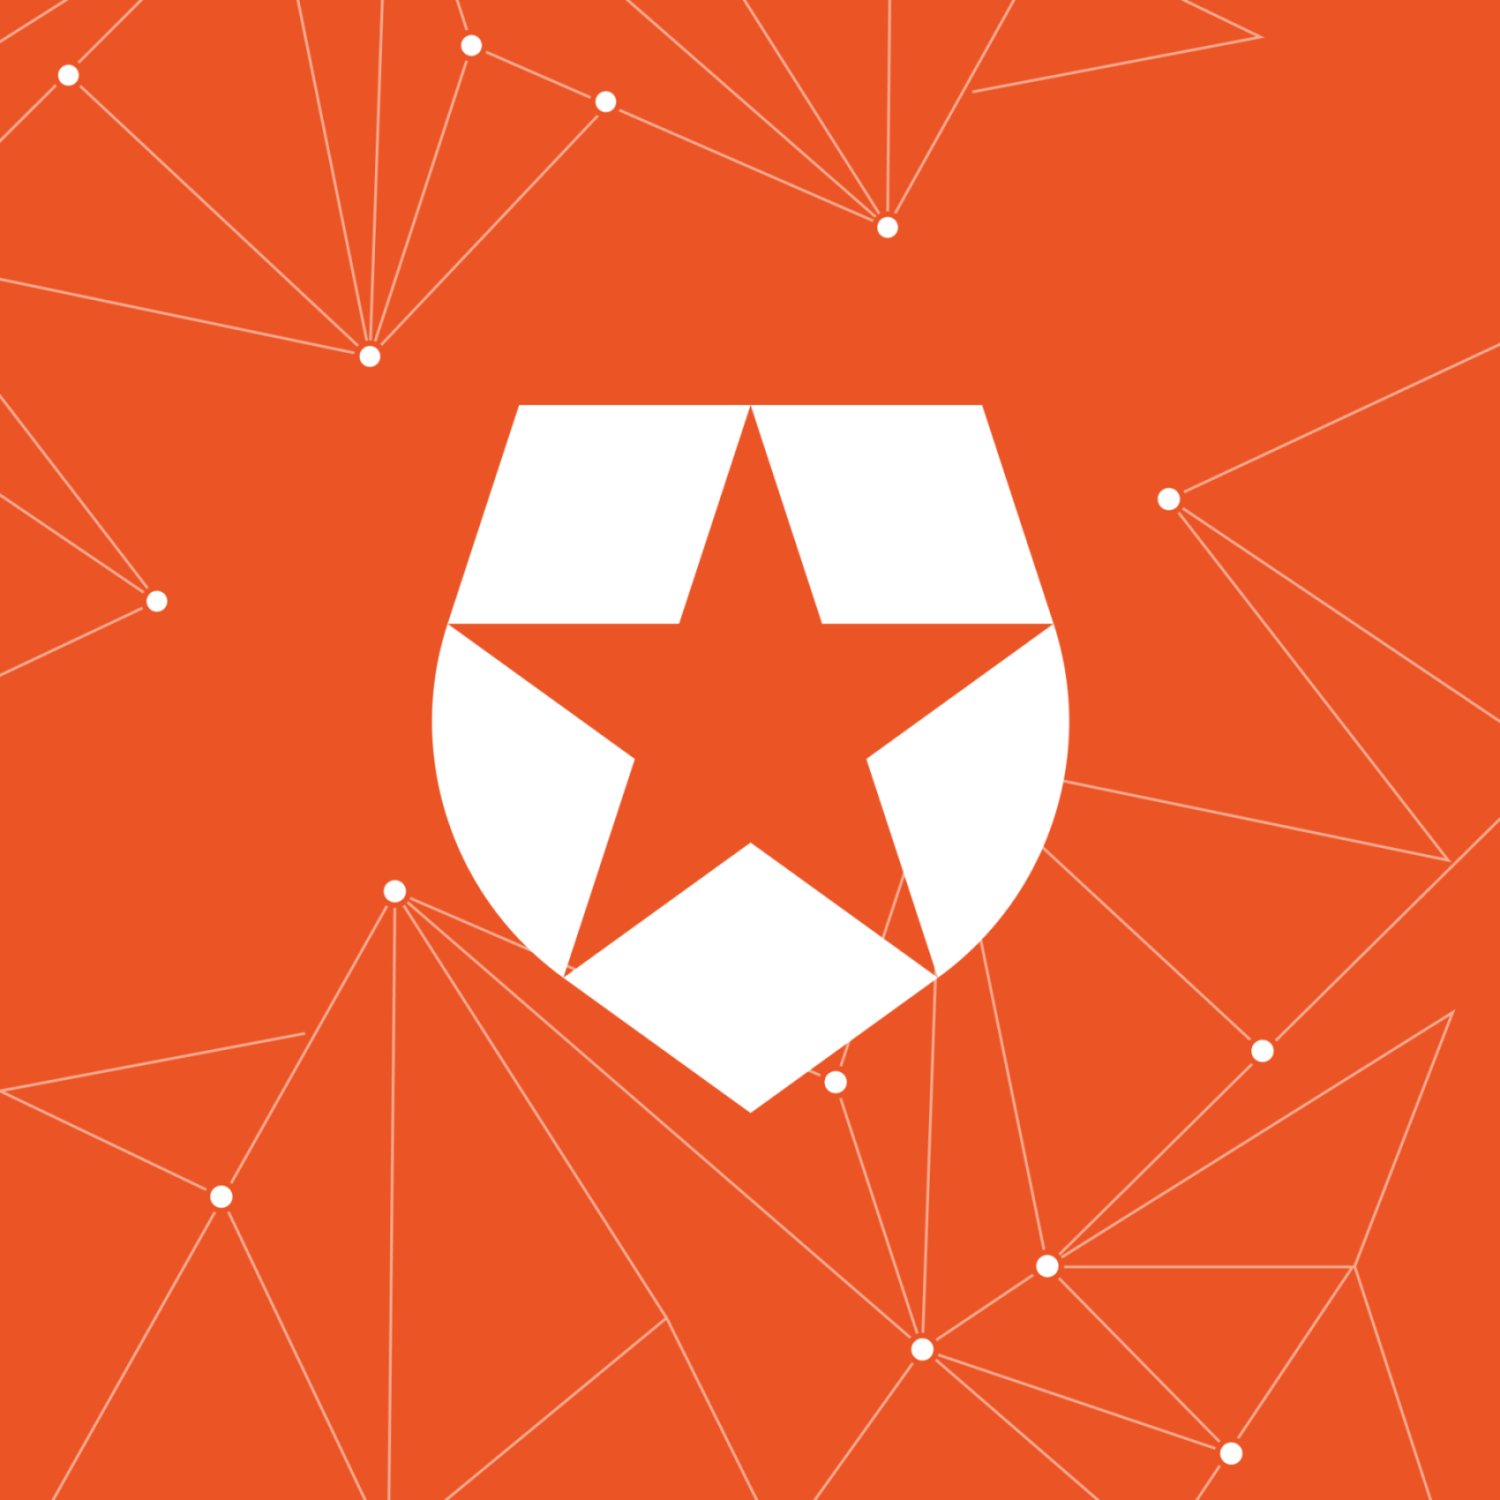 auth0 dot network orange